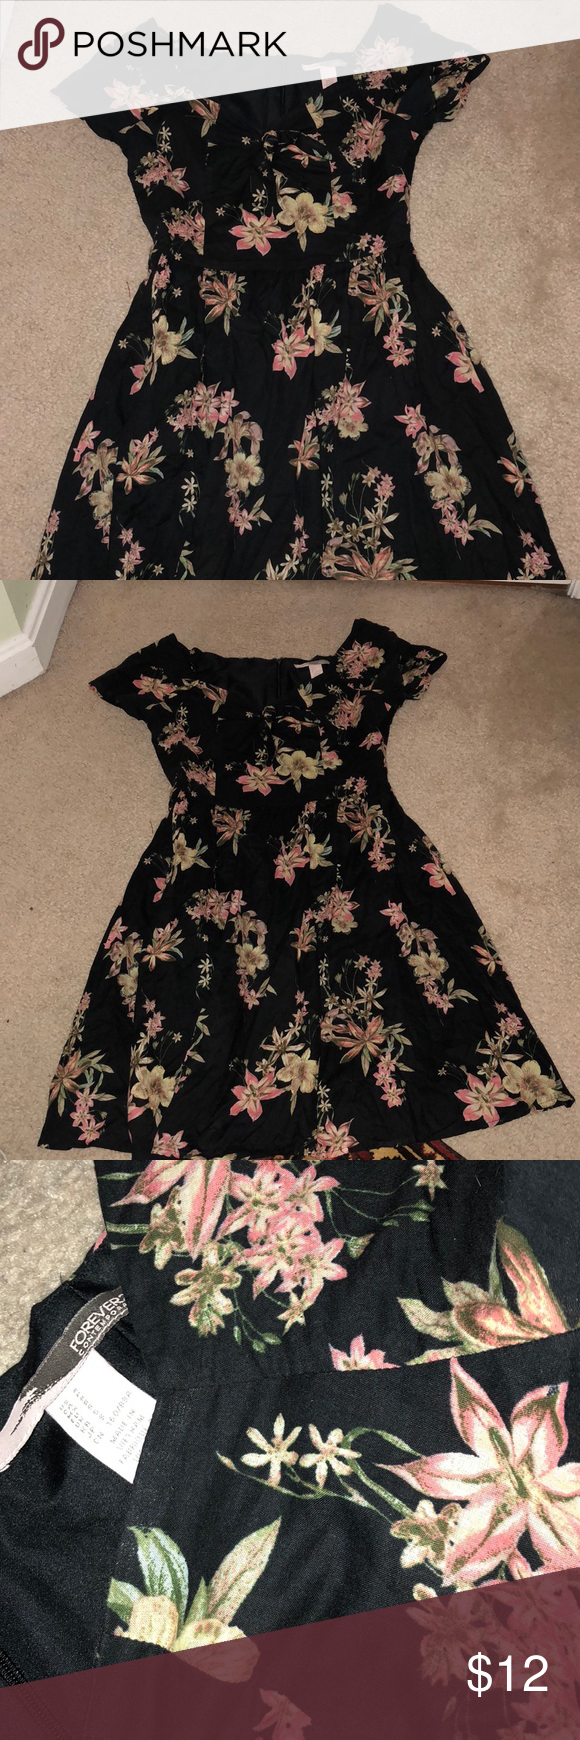 Floral Black Forever21 Cute Dress Black Forever21 Dress With Pink Flowers Bow Tie With Sweetheart Neck Line Size S Foreve Fashion Cute Dresses Clothes Design [ 1740 x 580 Pixel ]